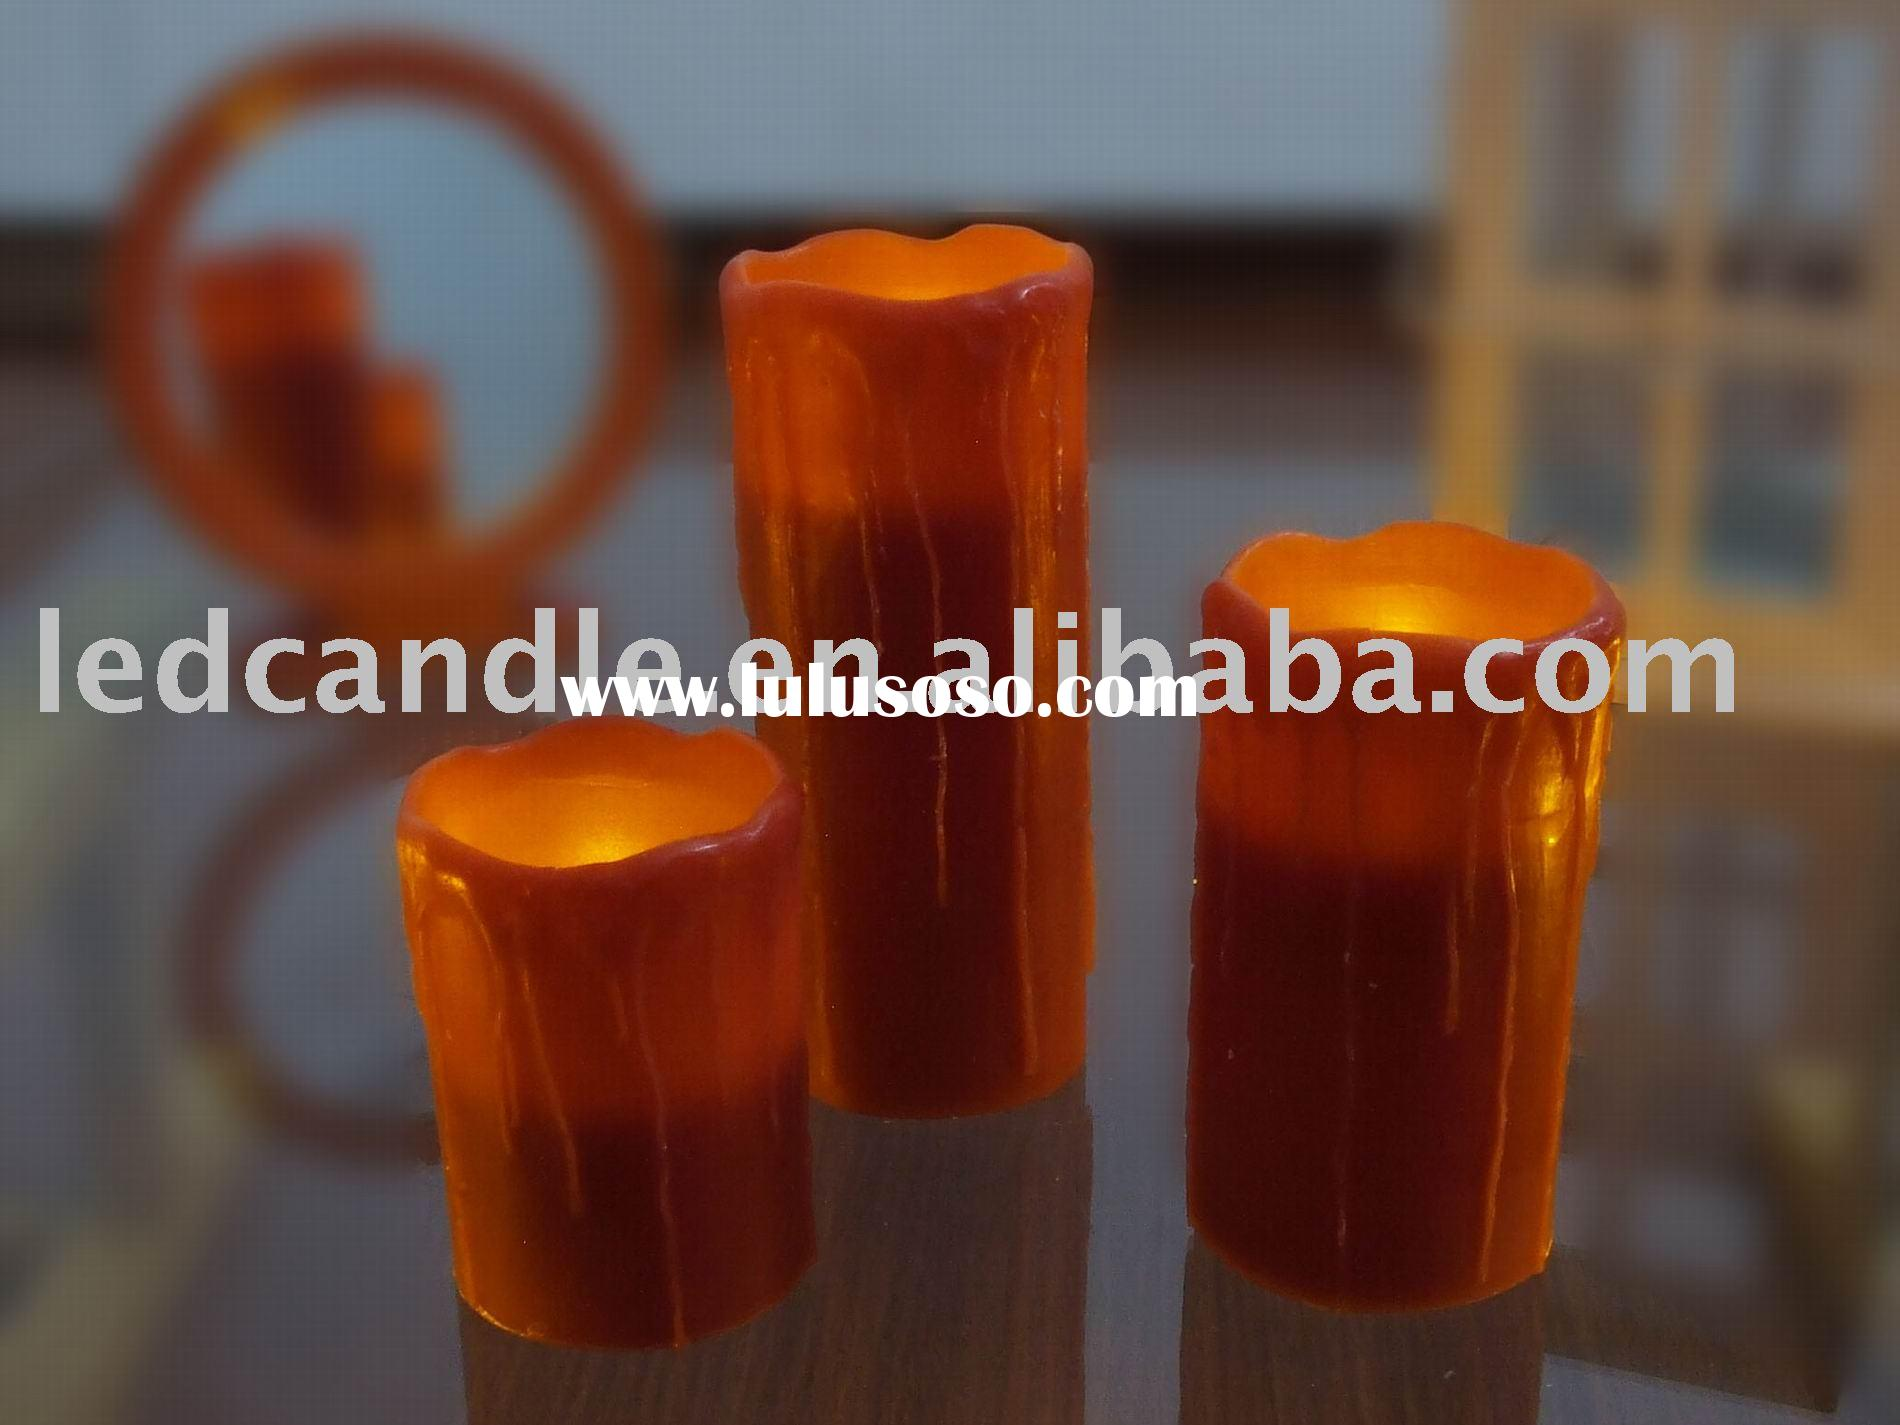 LED candle, Tea lights electronic candles